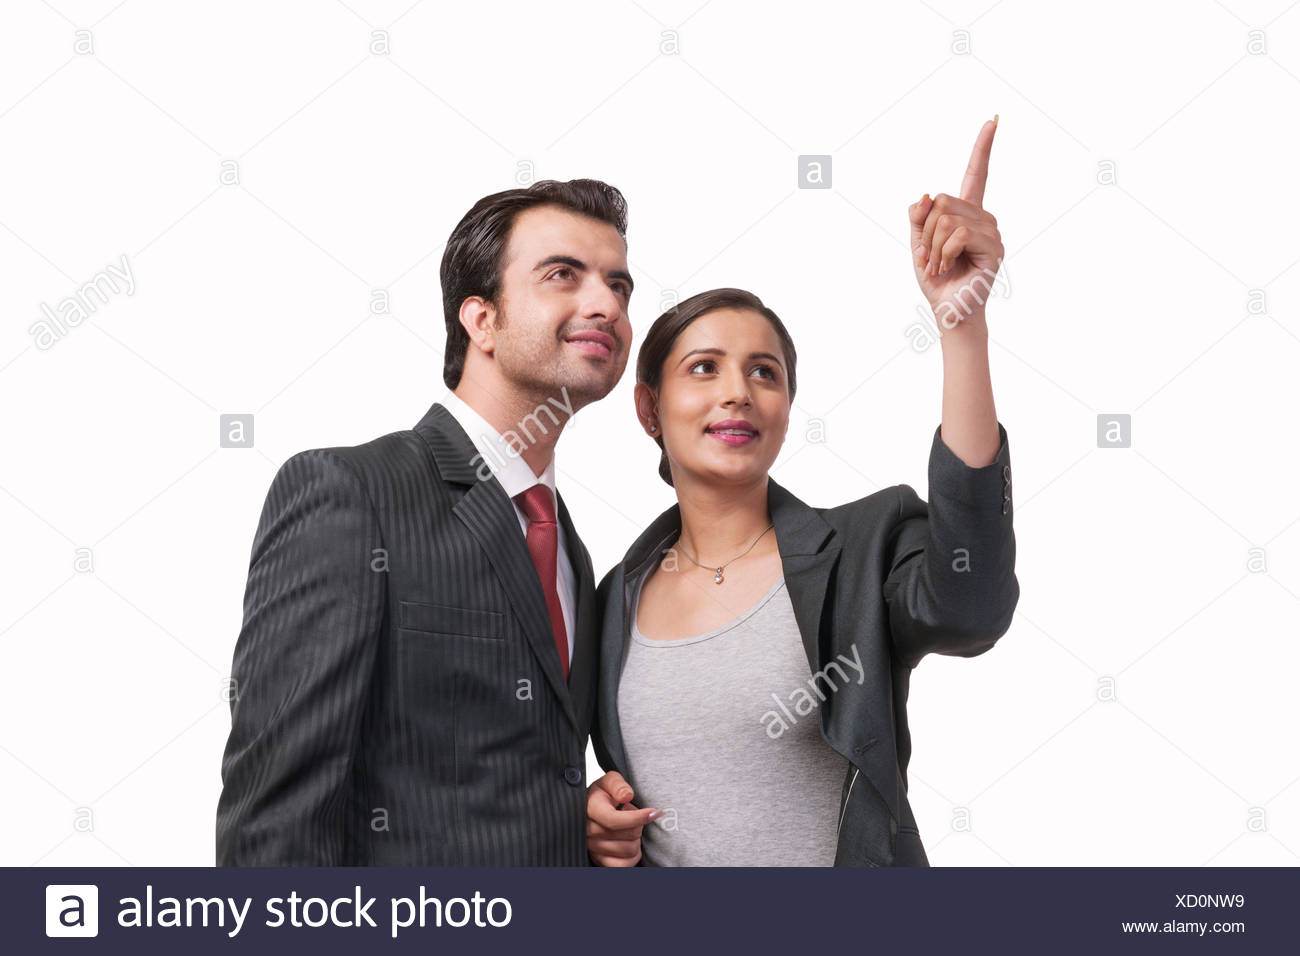 Smiling businesswoman showing something to colleague against white background - Stock Image